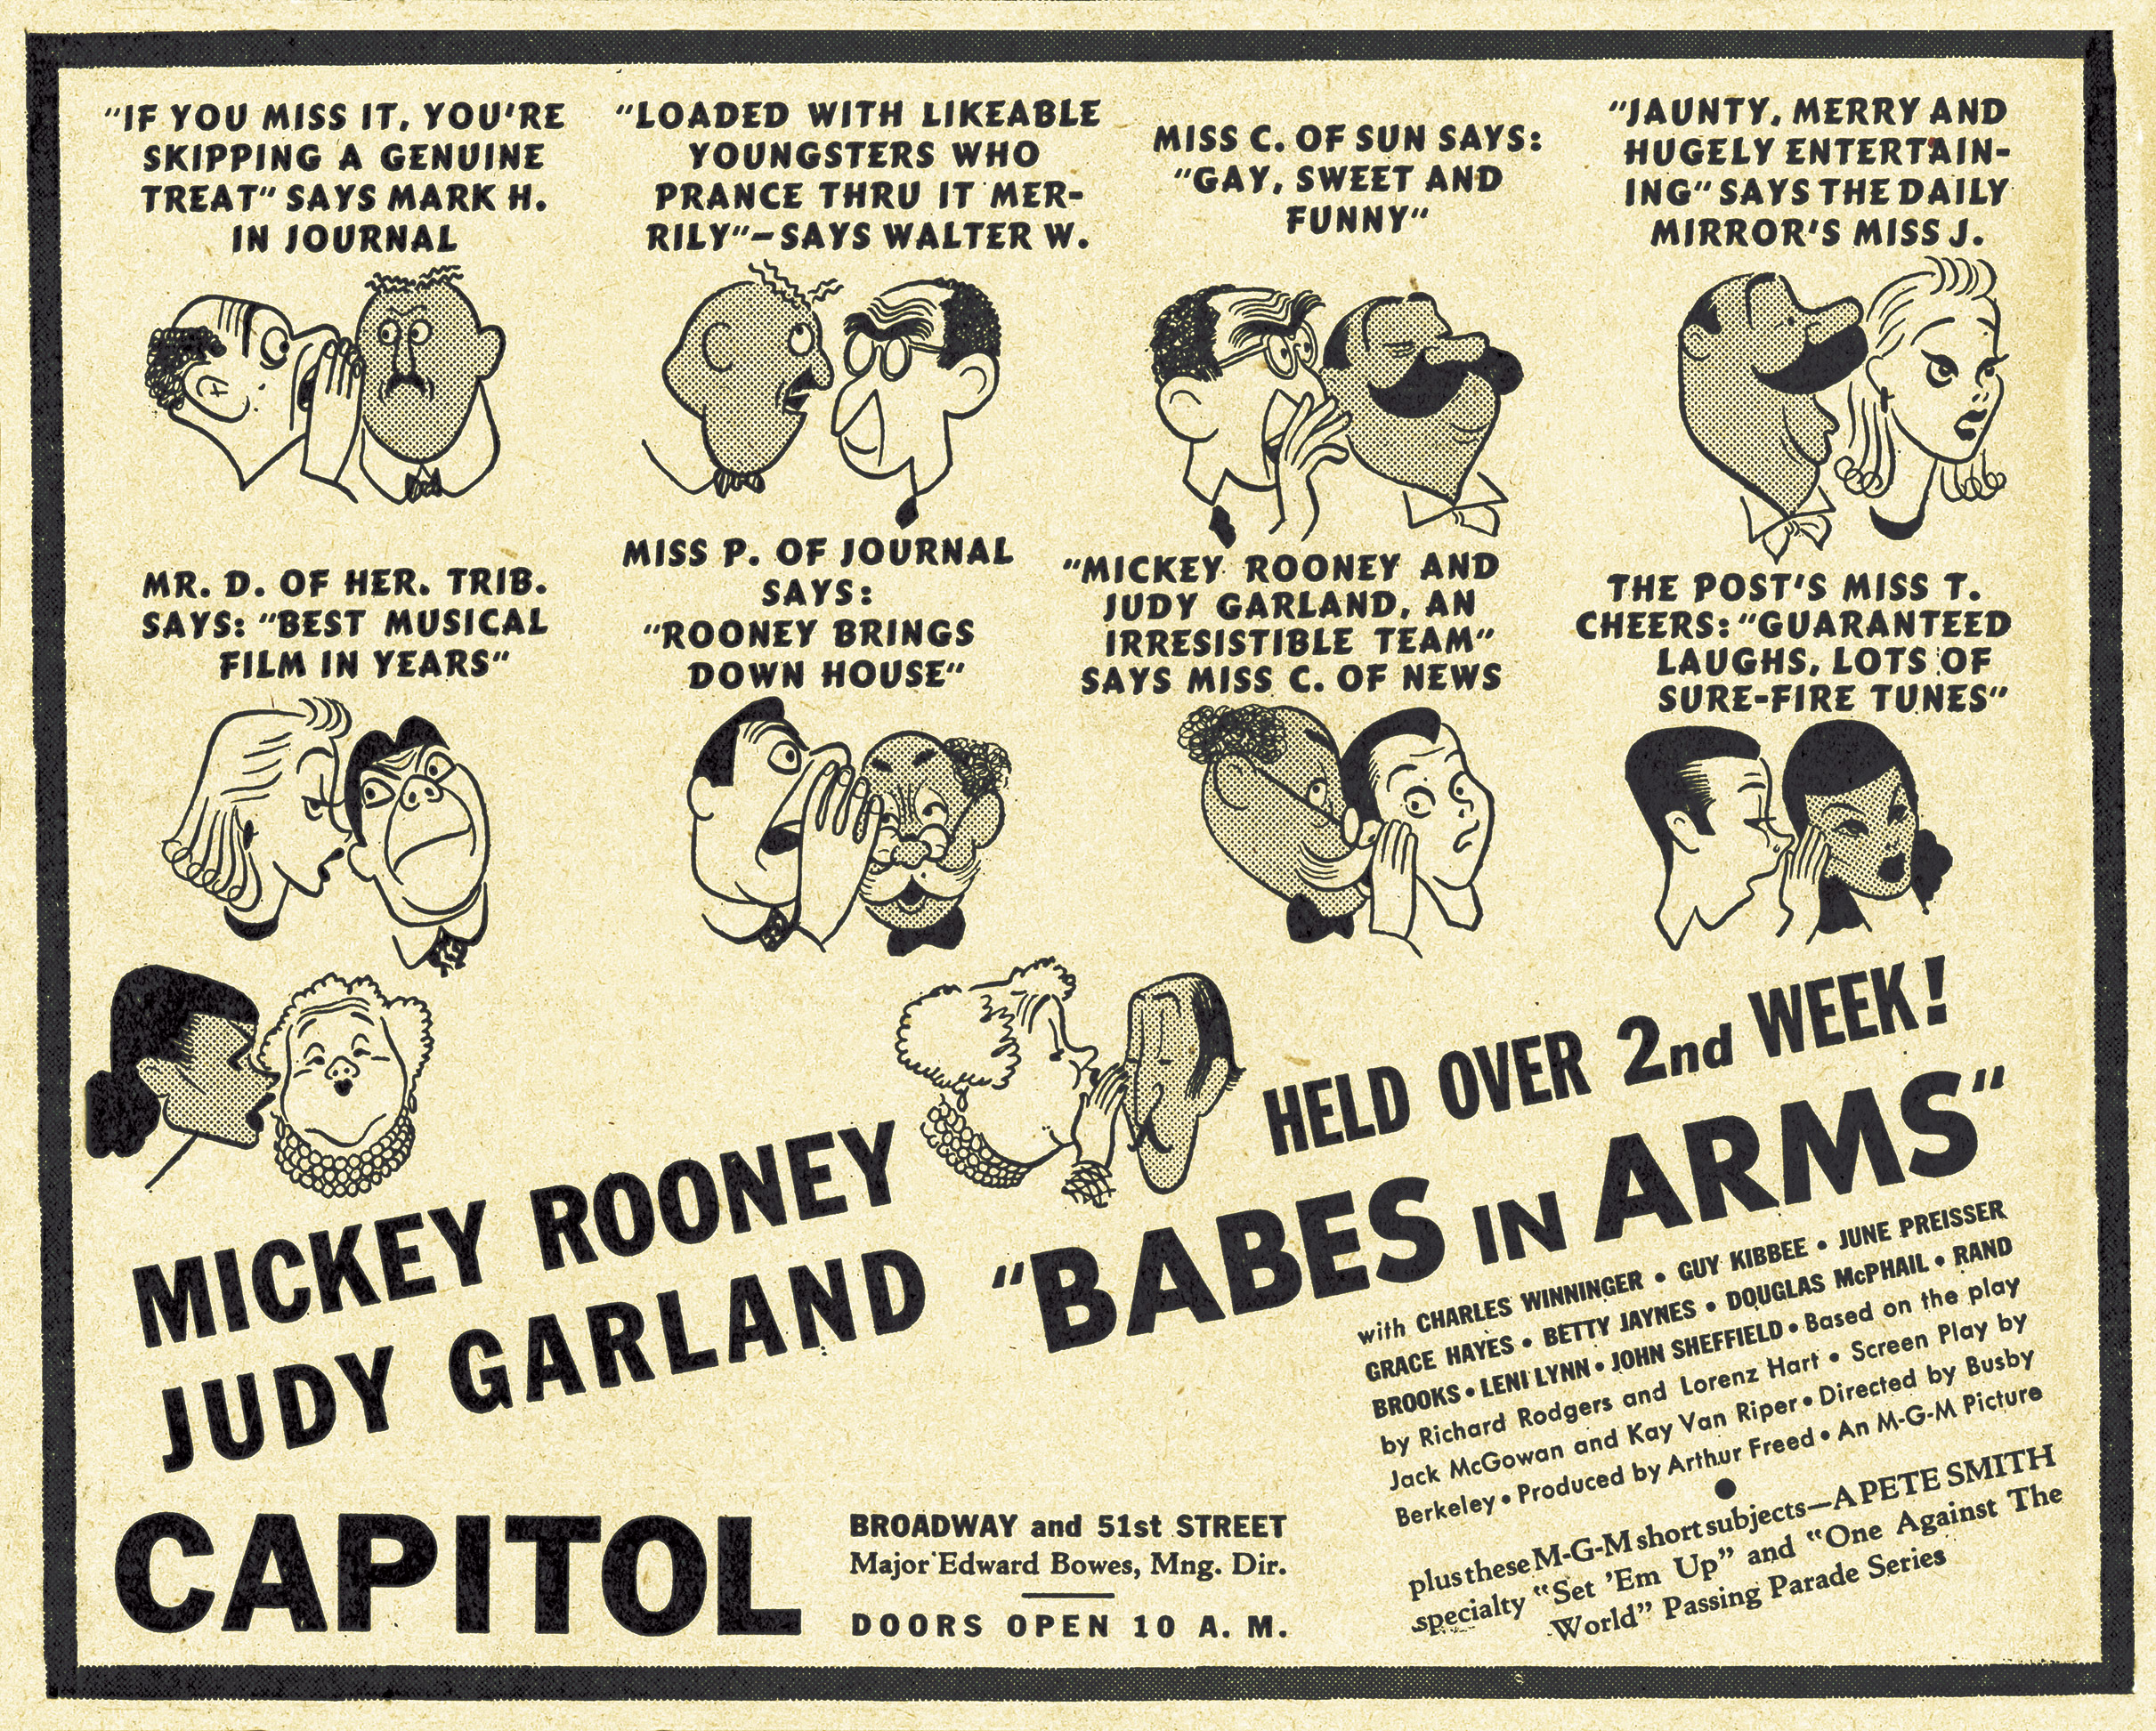 Babes in Arms newspaper advertisement, 1939.